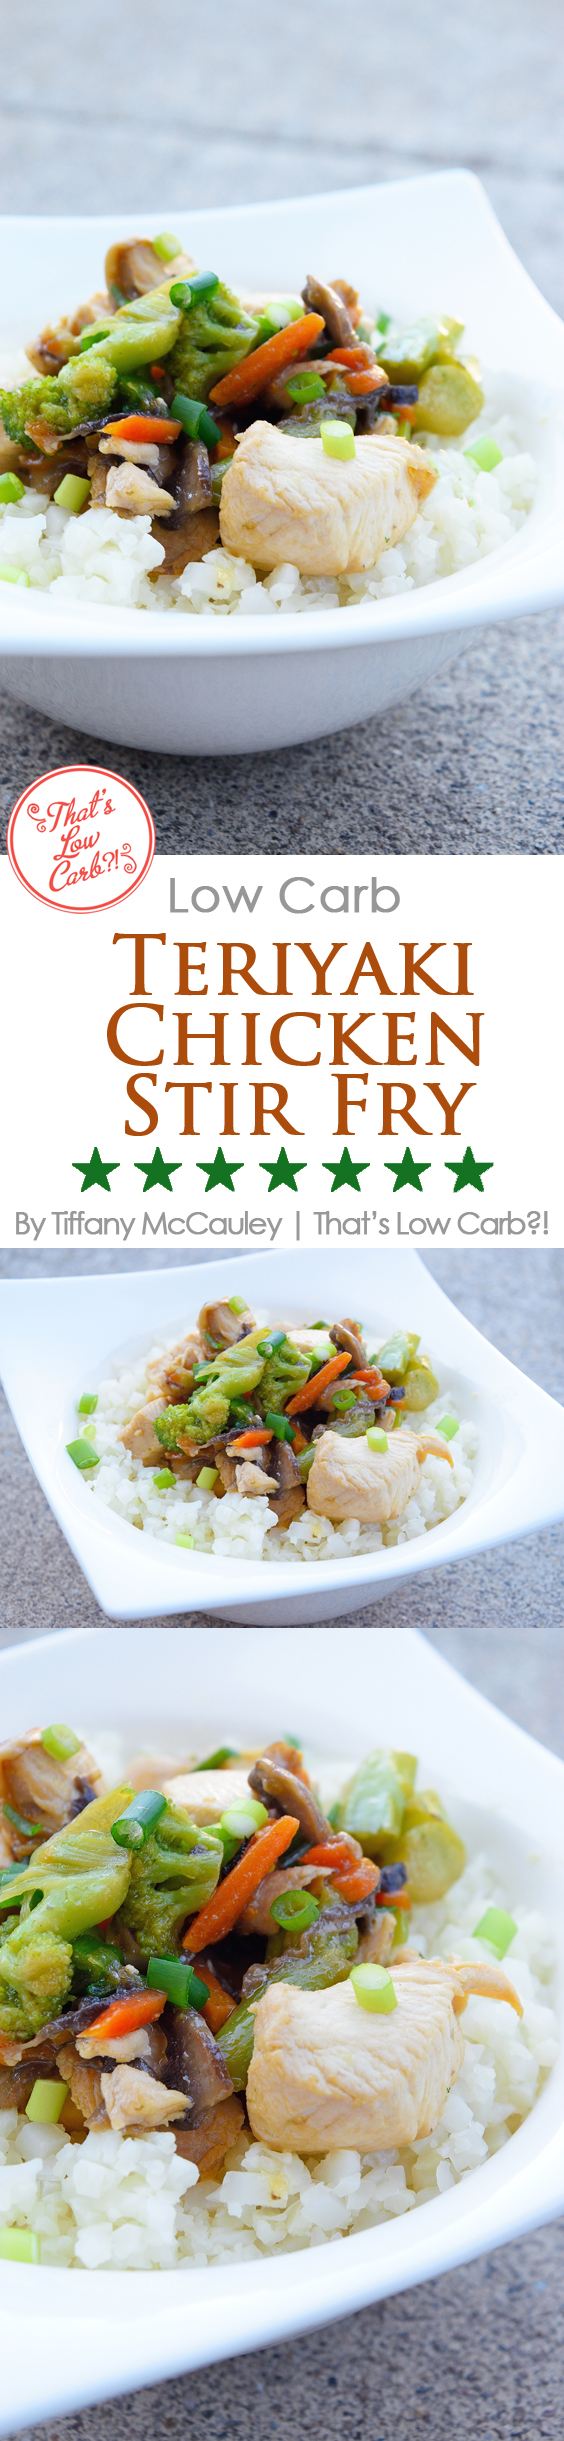 Low Carb Teriyaki Chicken Stir Fry Pin Graphic For Pinterest. Pin this image to save this recipe to your favorite boards!